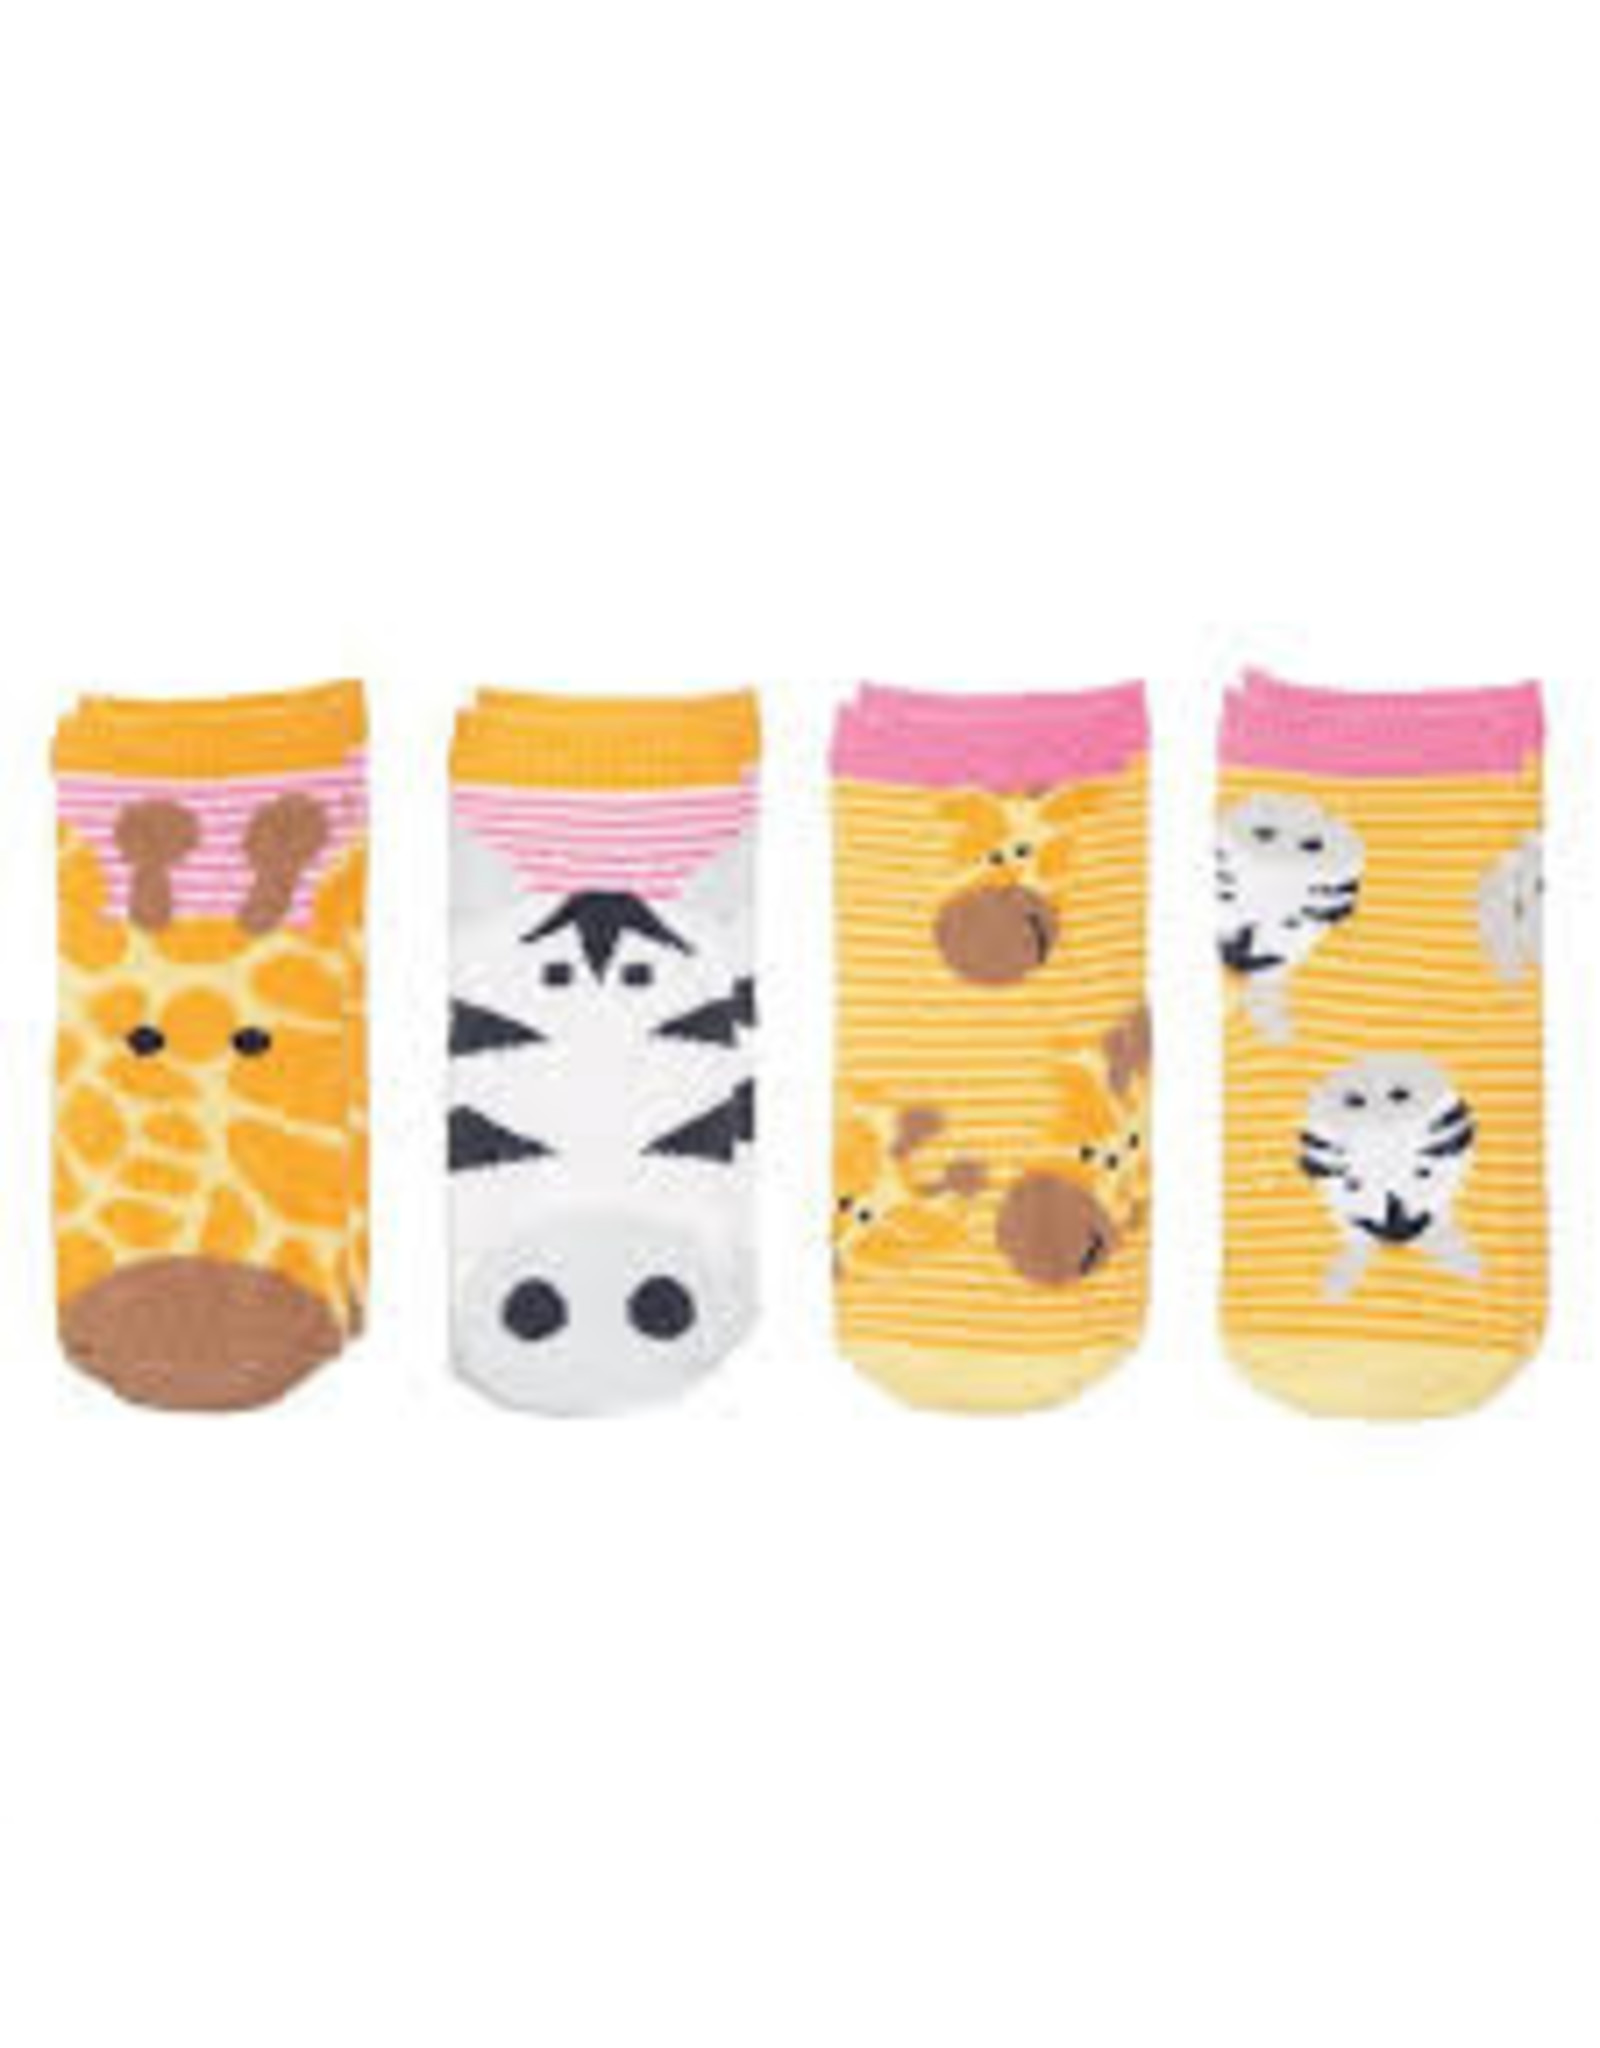 FLAPJACK MIX AND MATCH ANIMAL SOCKS